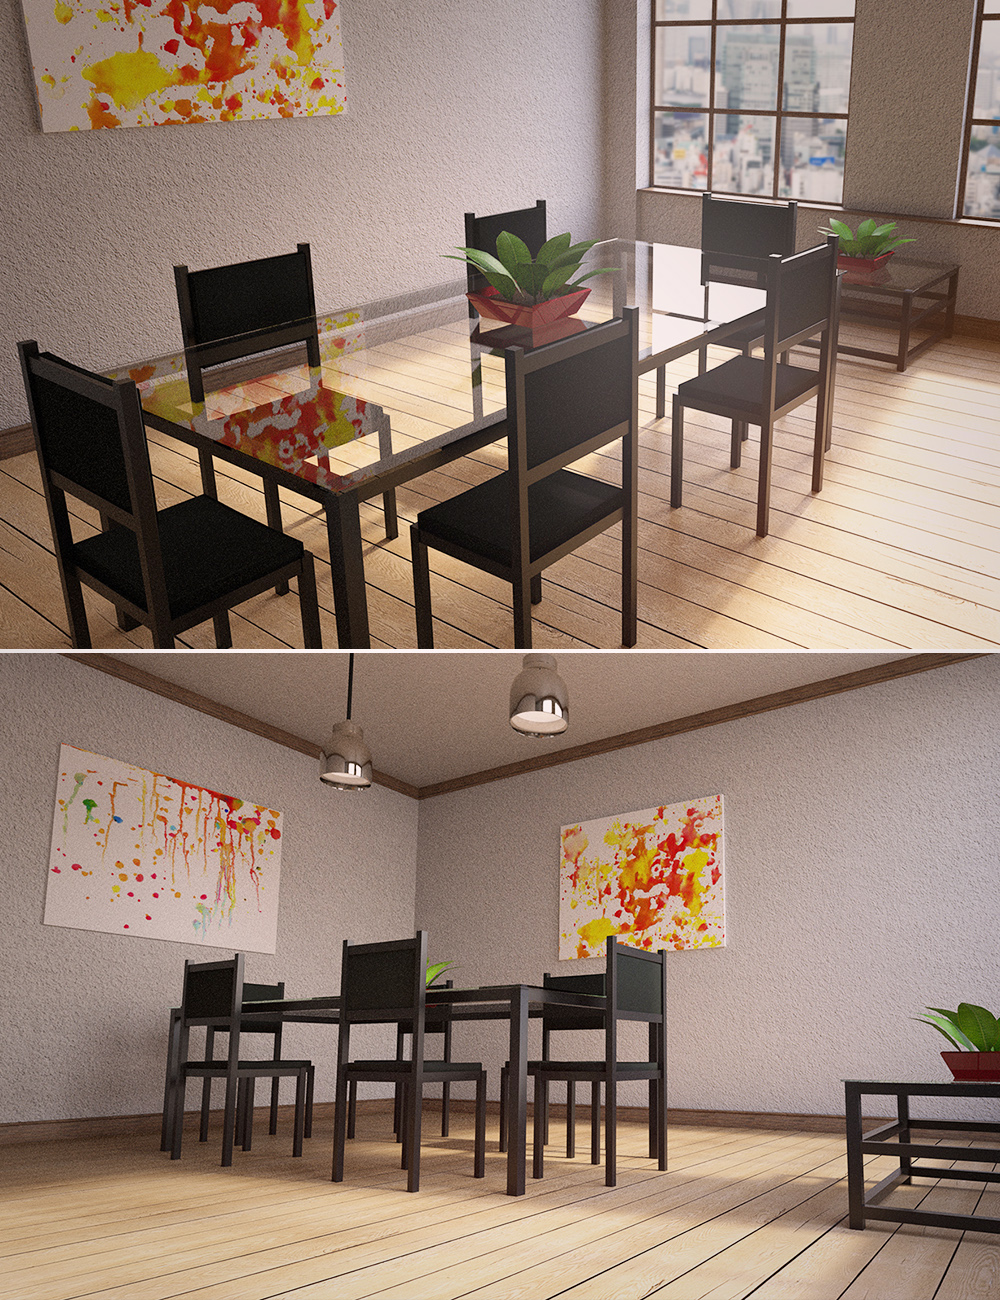 Cozy Dining Room by: , 3D Models by Daz 3D